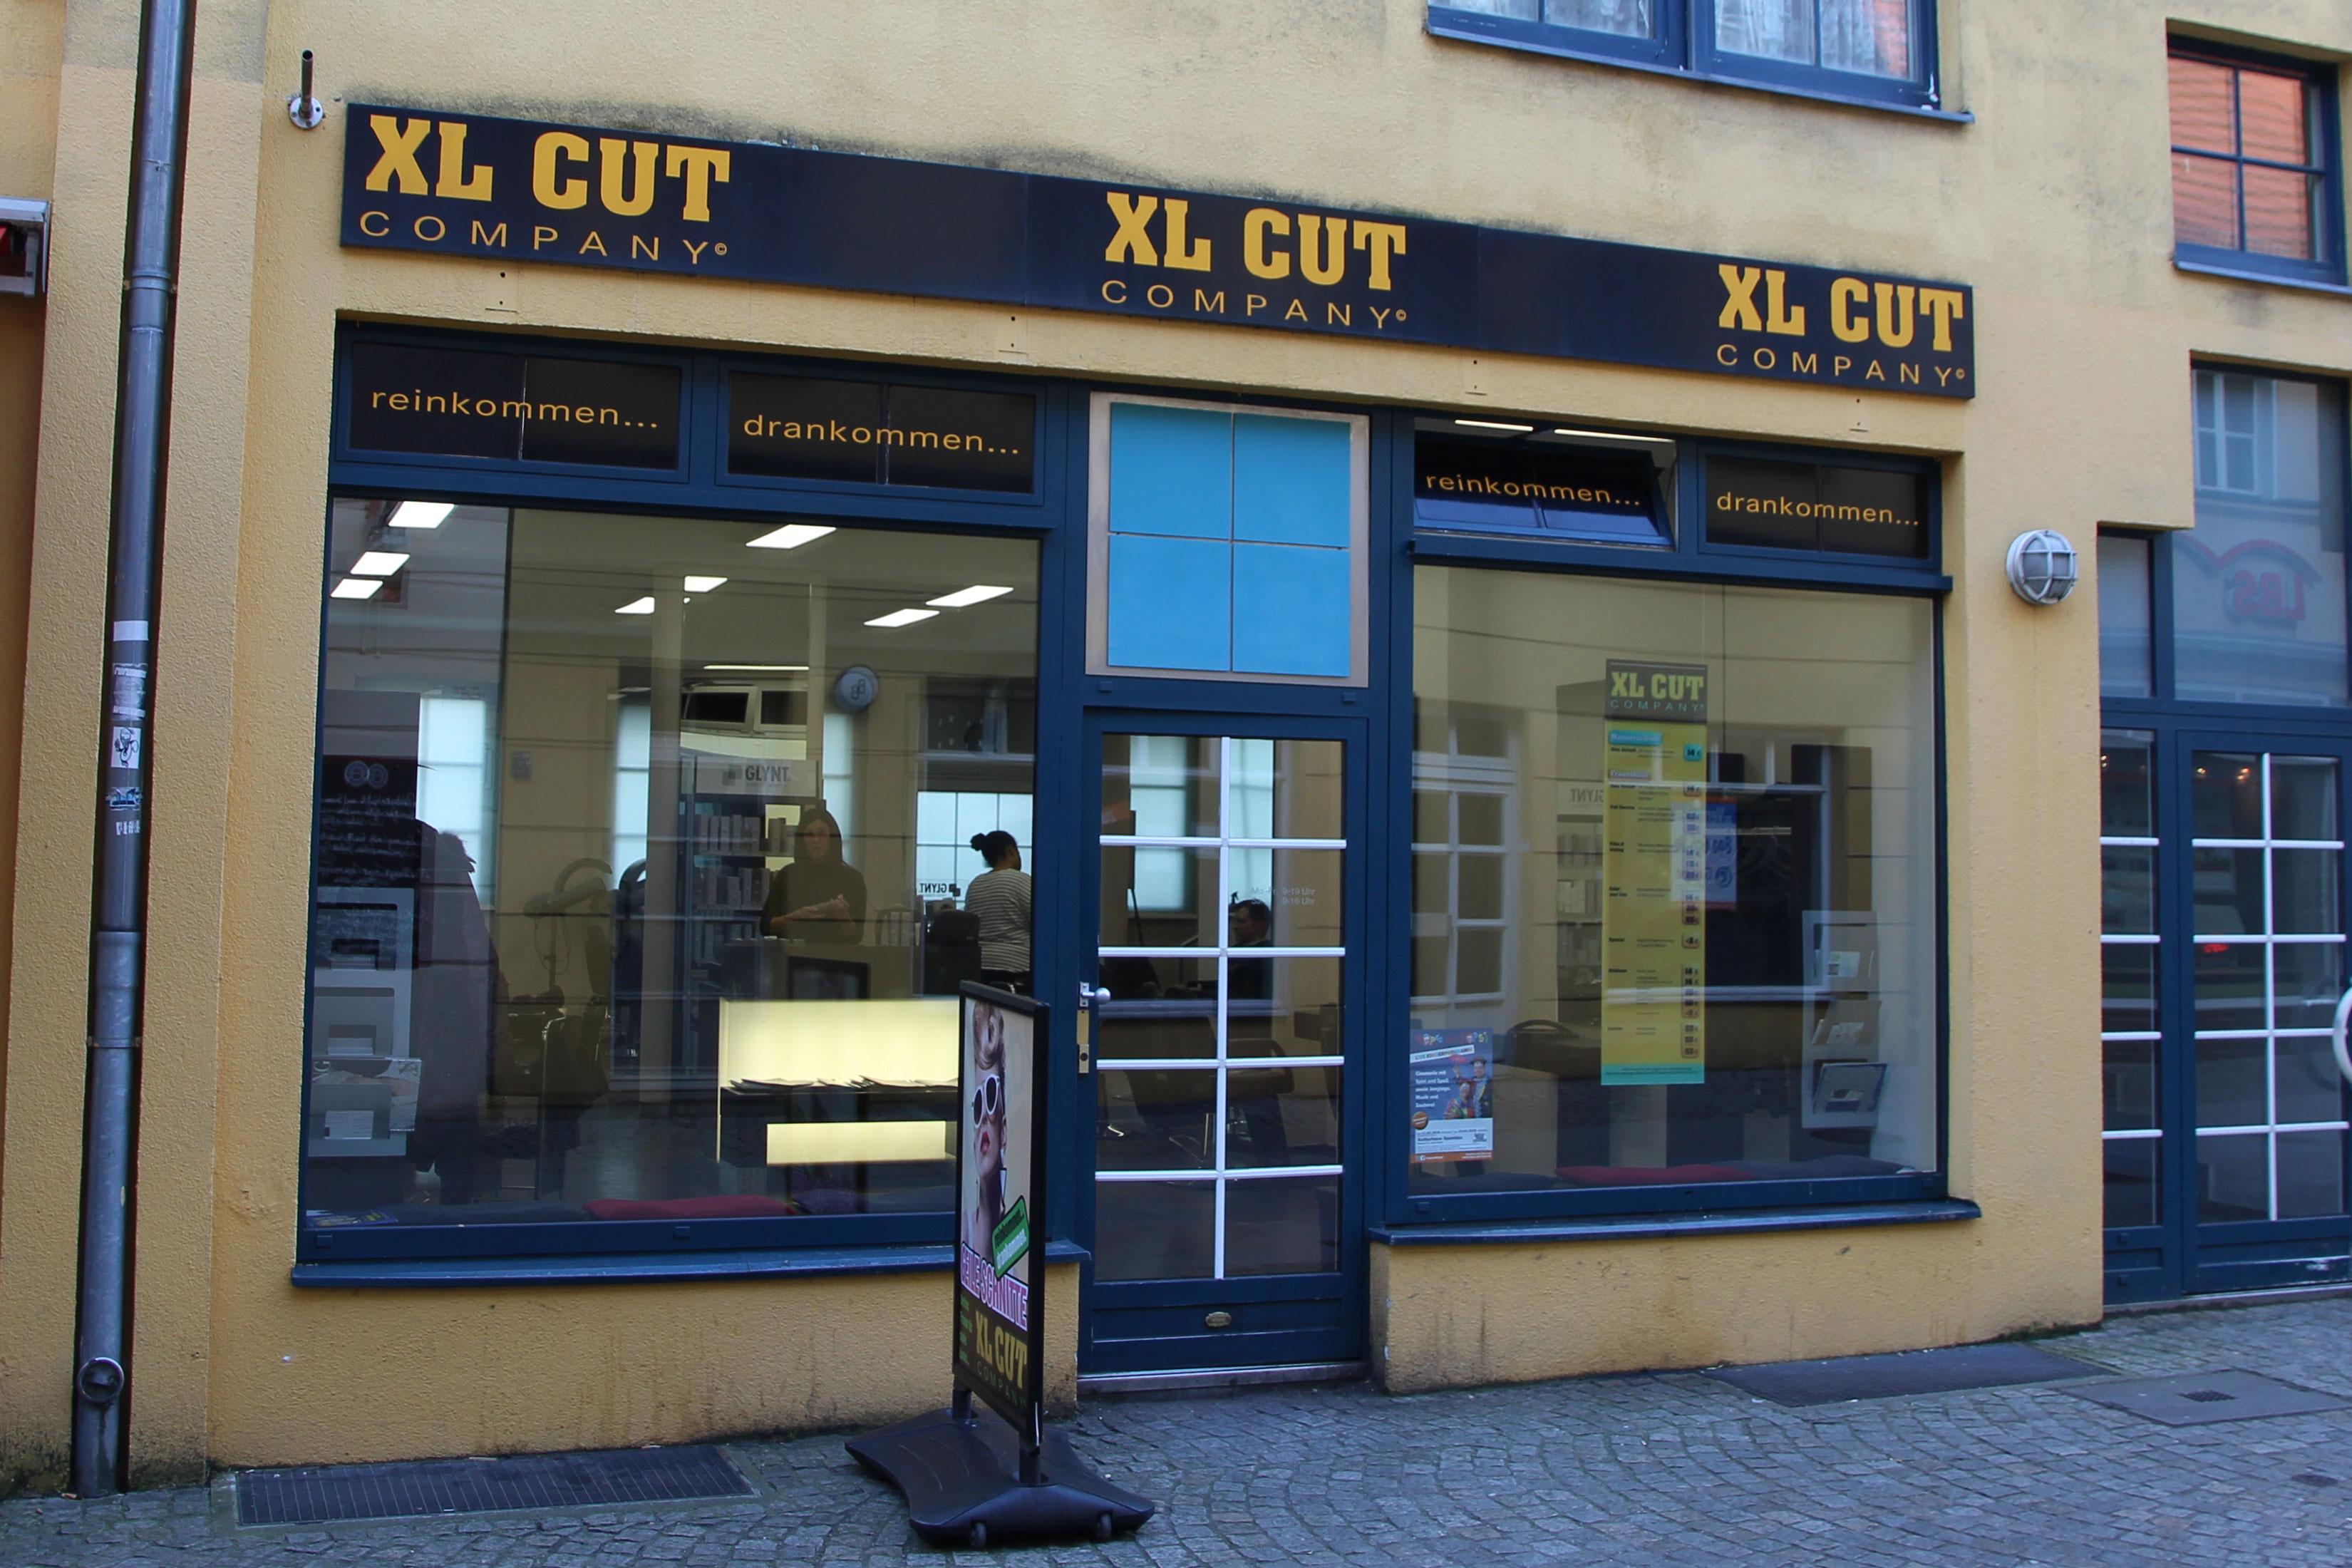 XL Cut Company